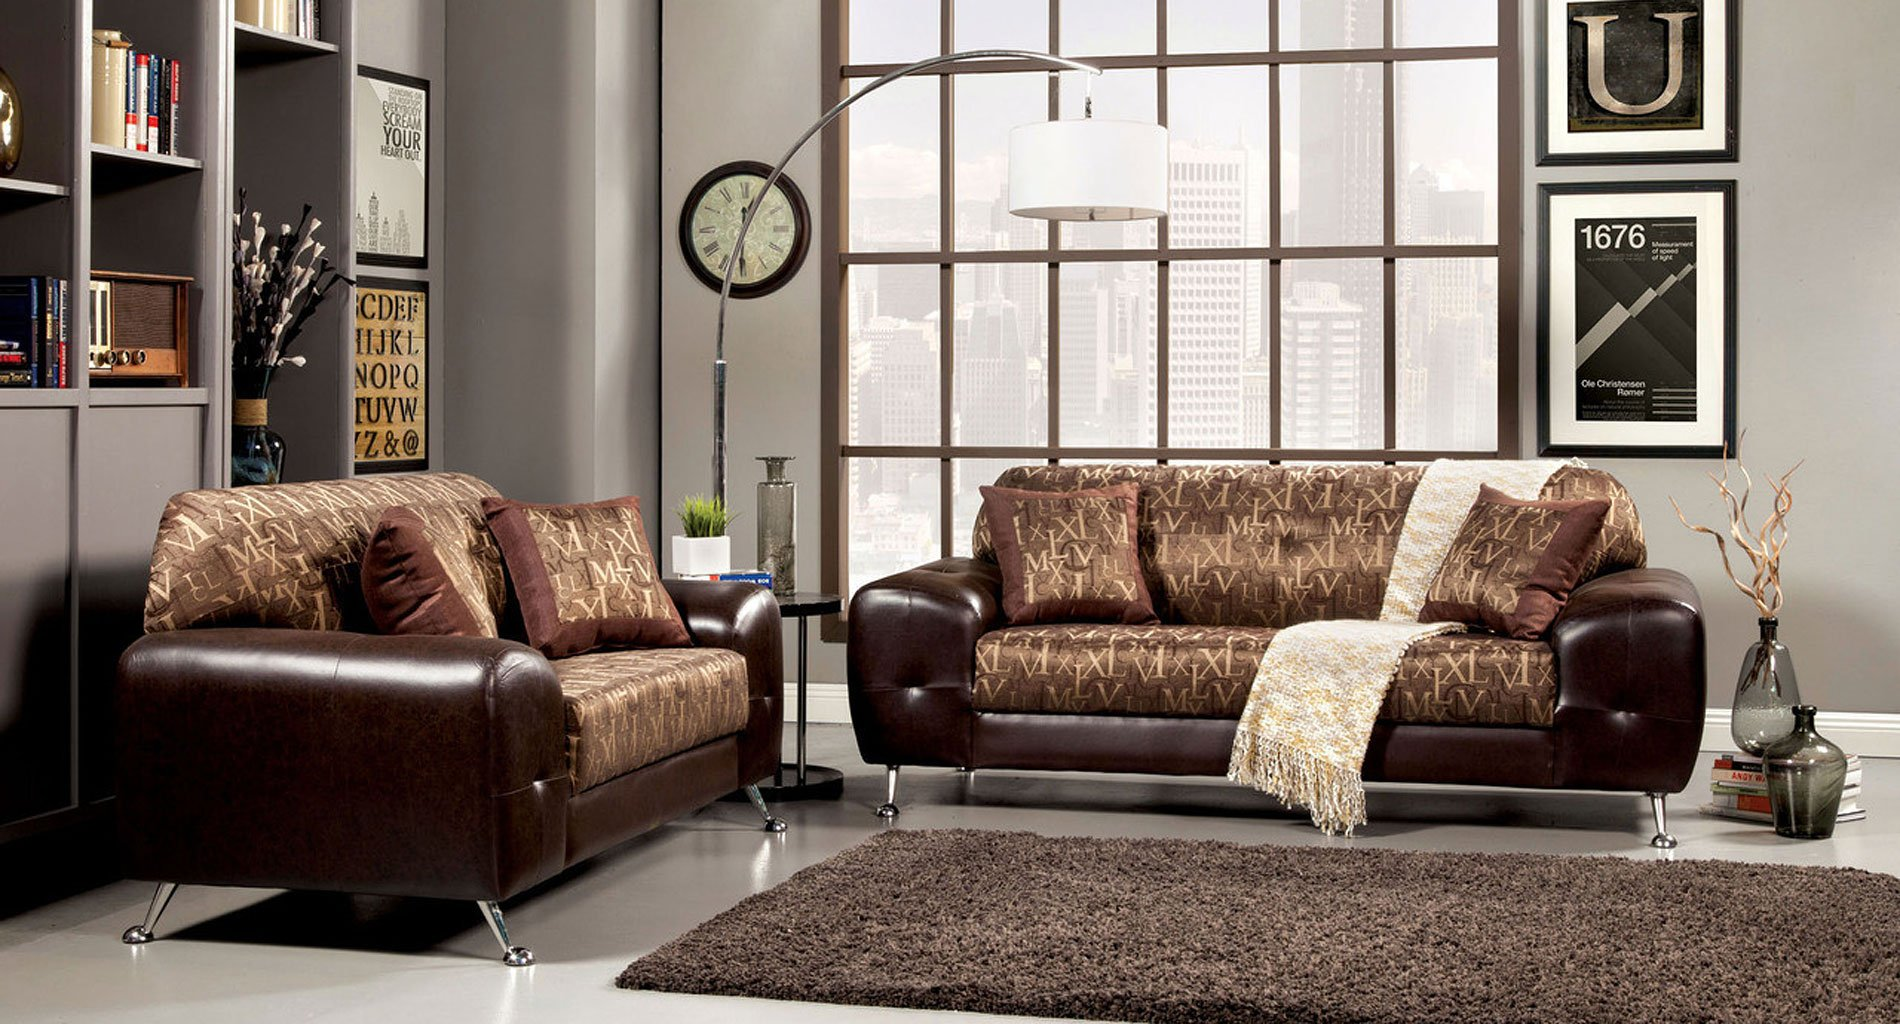 Avdira living room set gold living room sets living for Gold sofa living room